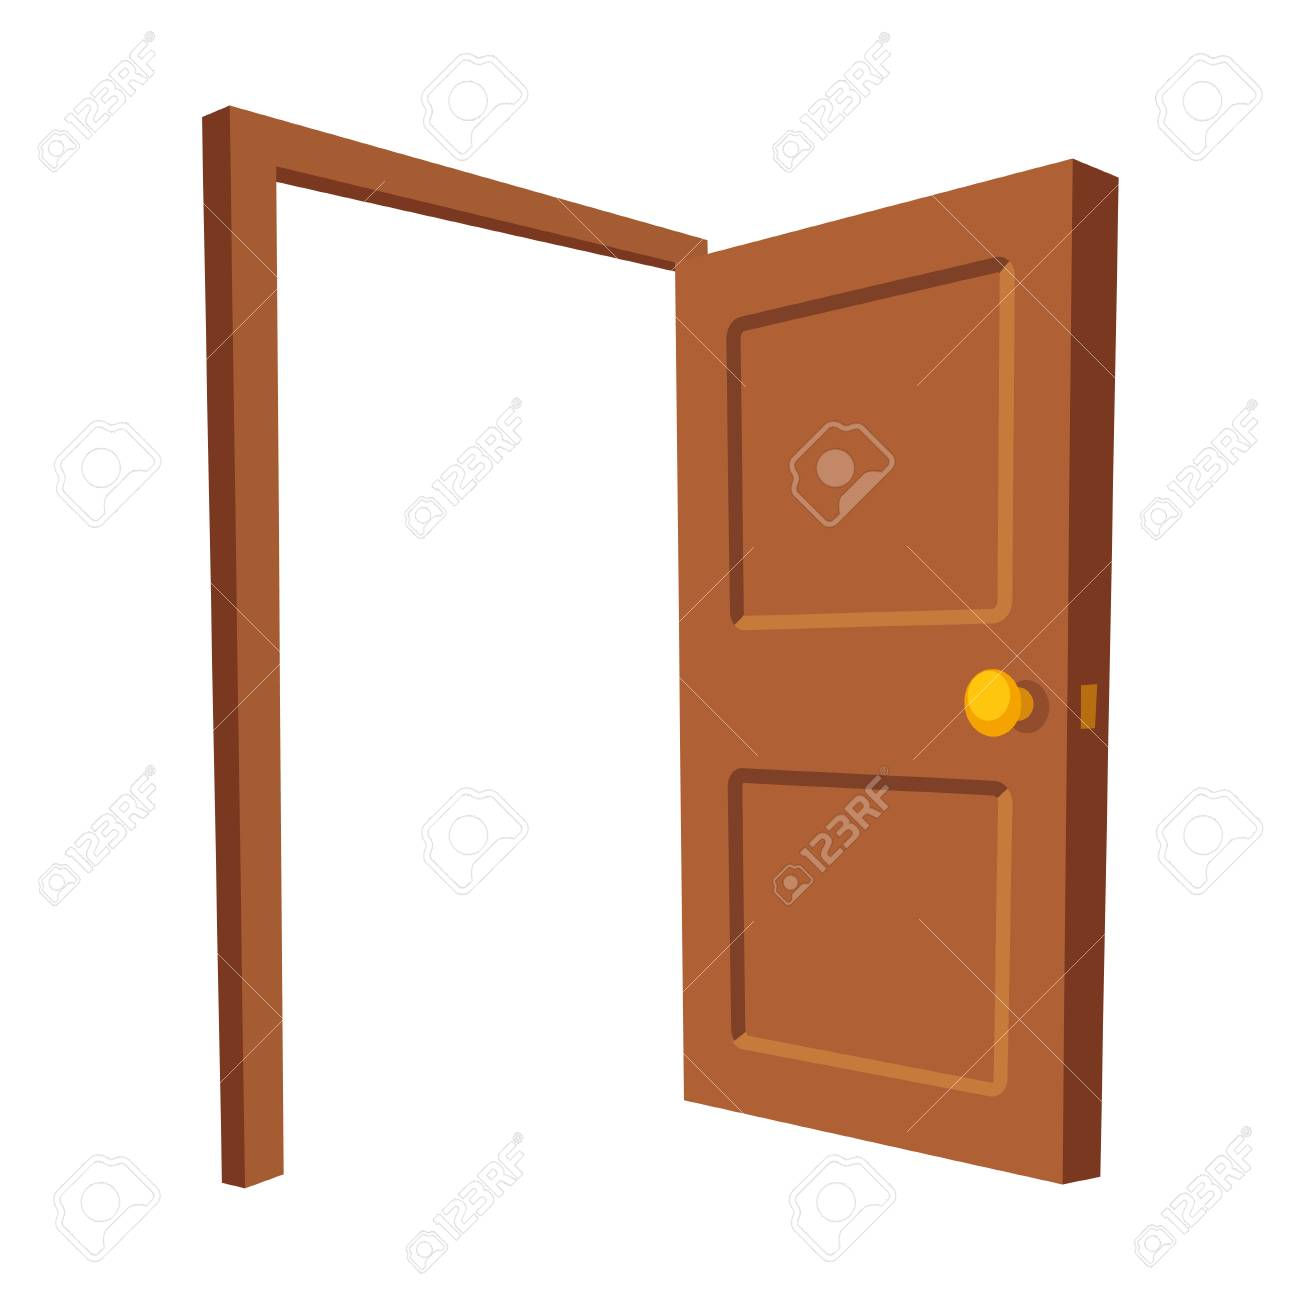 Open Door Isolated Illustration. Wooden Door Frame In Cartoon ...